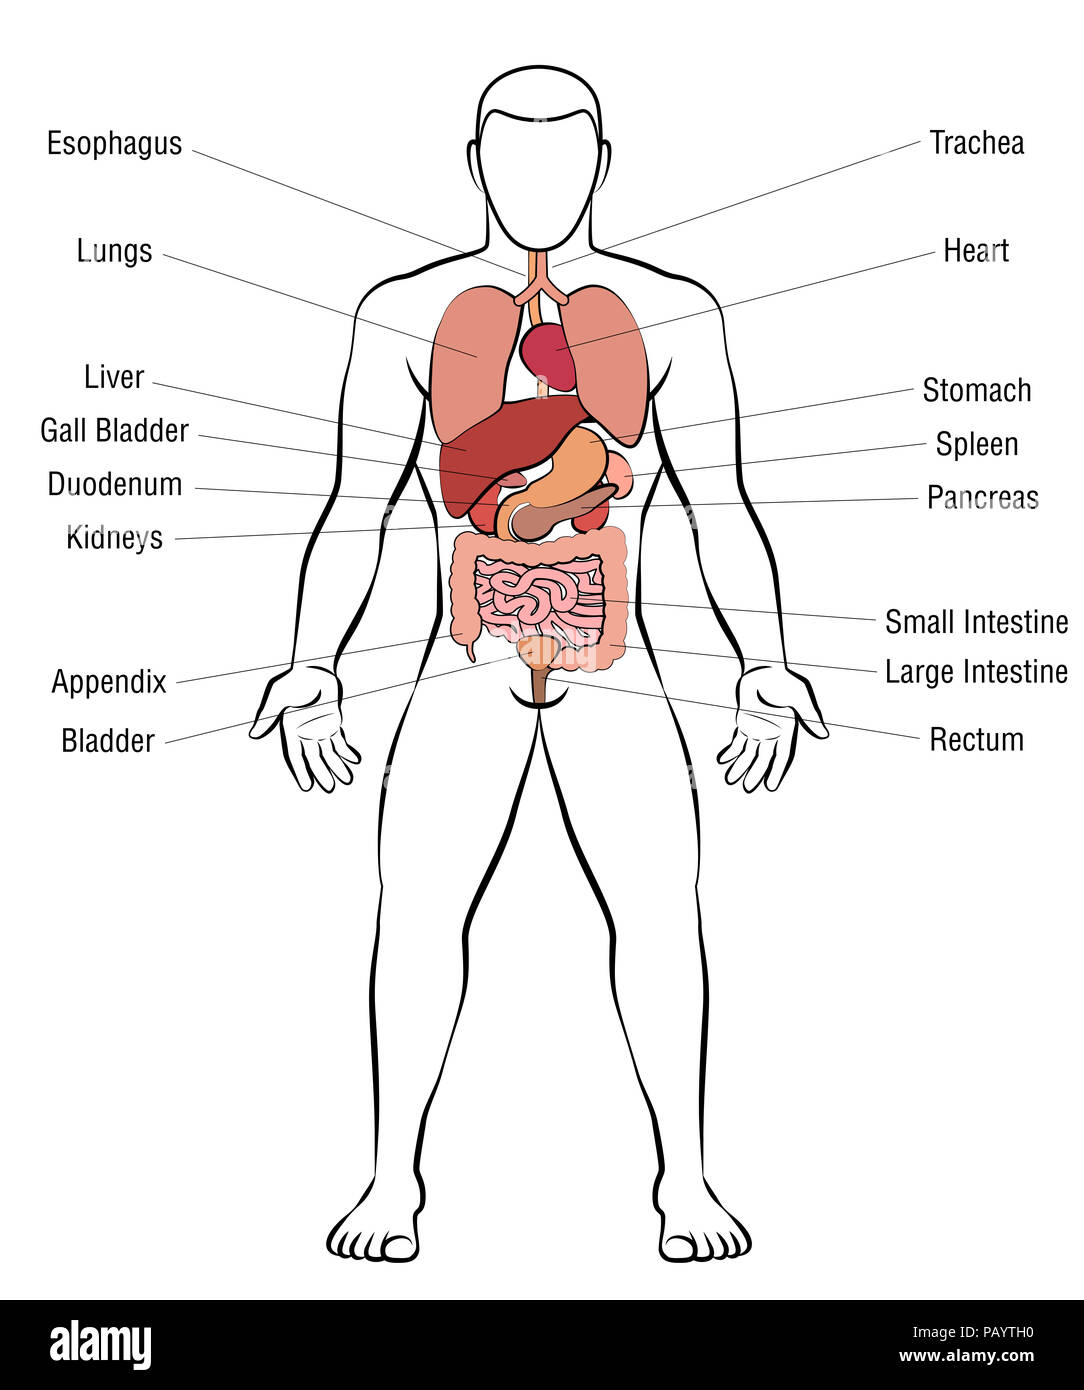 internal organs male body schematic human anatomy illustration rh alamy com body gear schematic the surge schematic body meaning